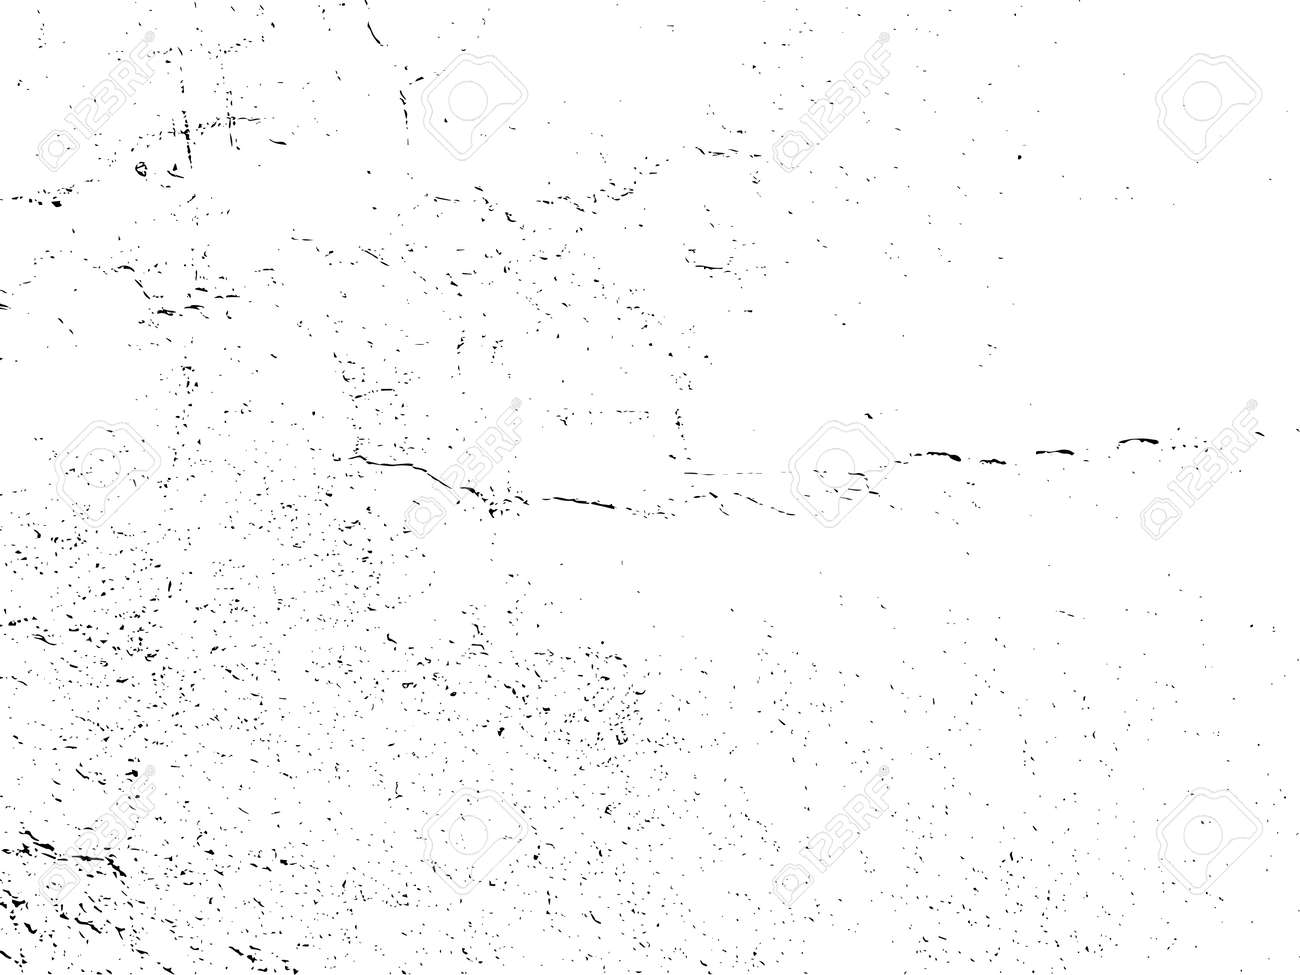 Concrete texture. Cement overlay black and white texture. - 169850373